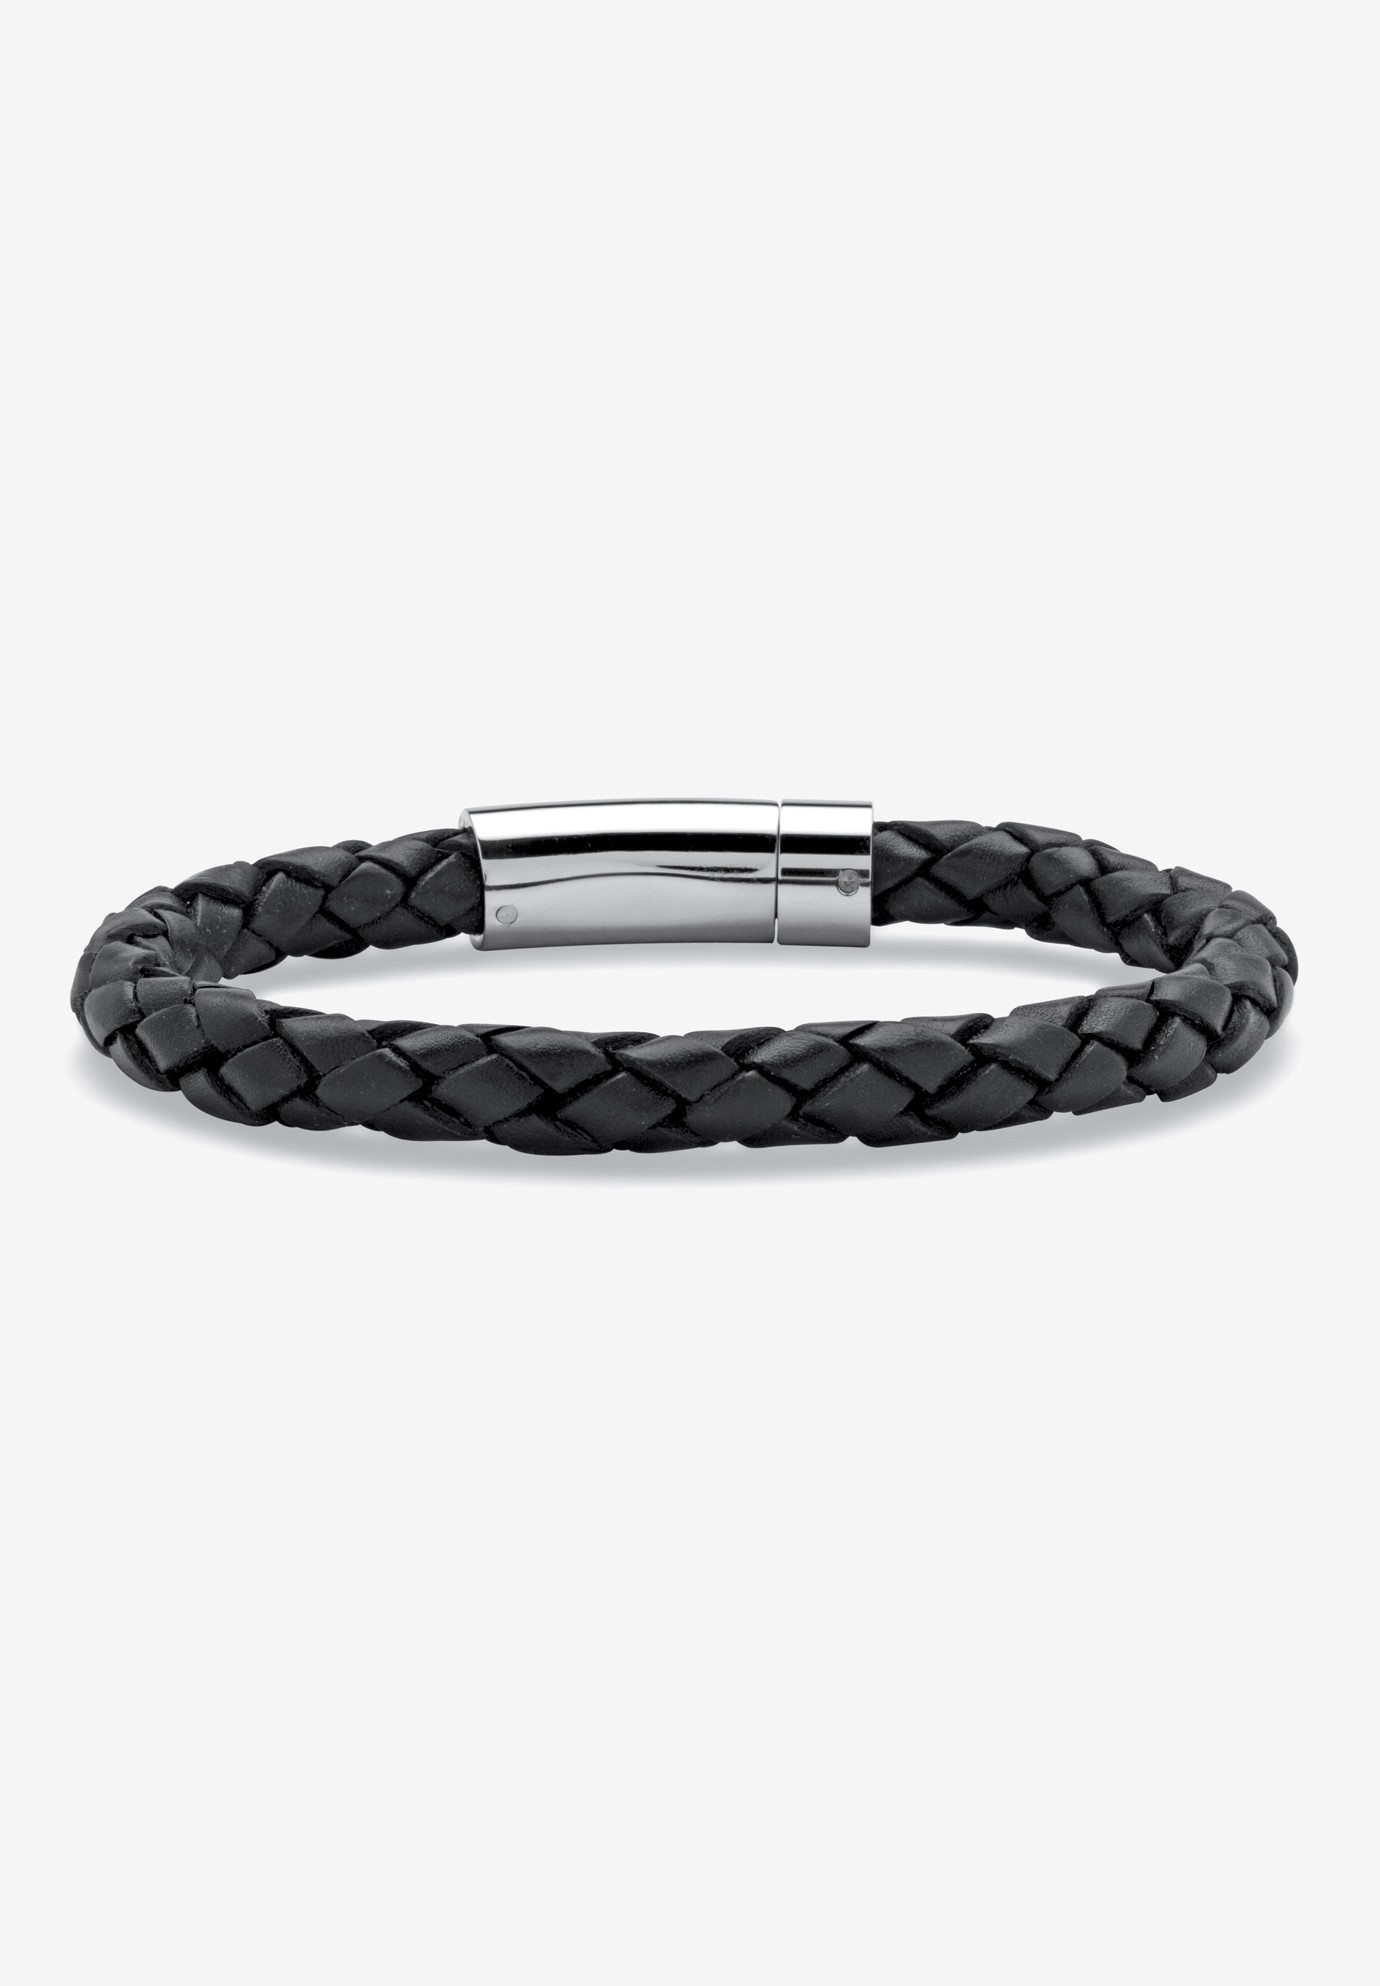 Stainless Steel and Twised Braid Leather Bracelet, STAINLESS STEEL